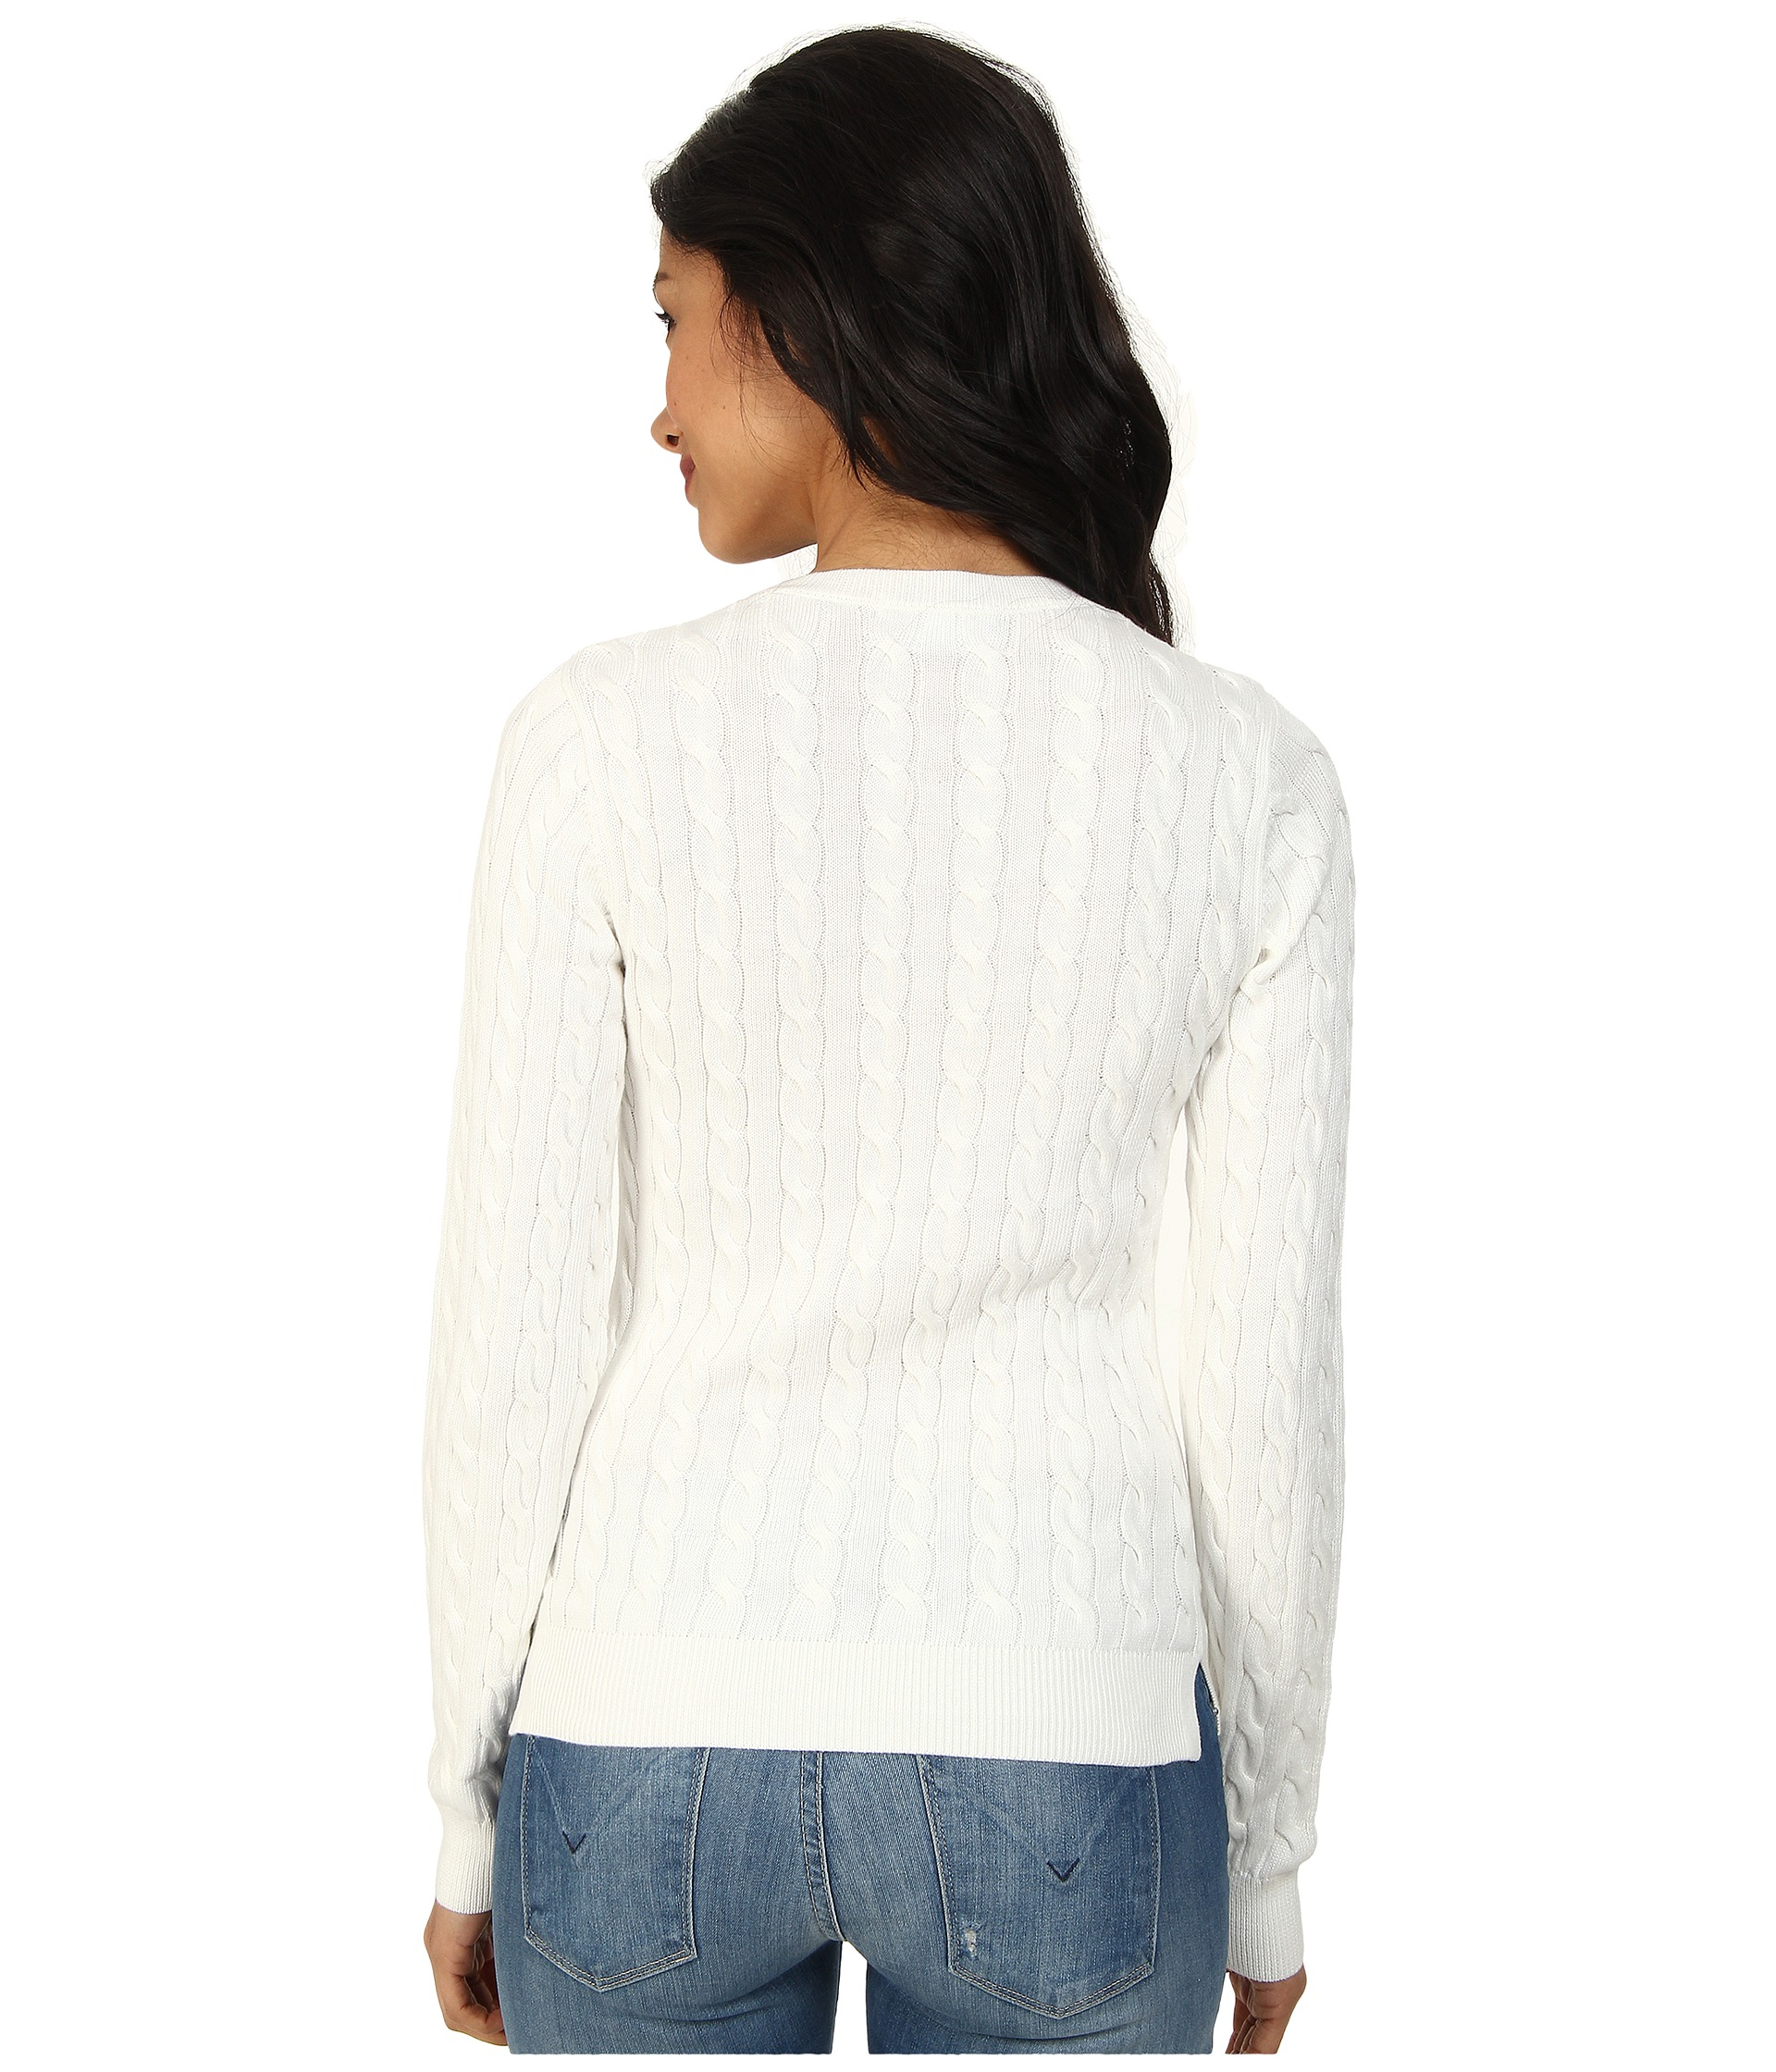 Lacoste Long Sleeve Cotton Cable Knit Sweater in White